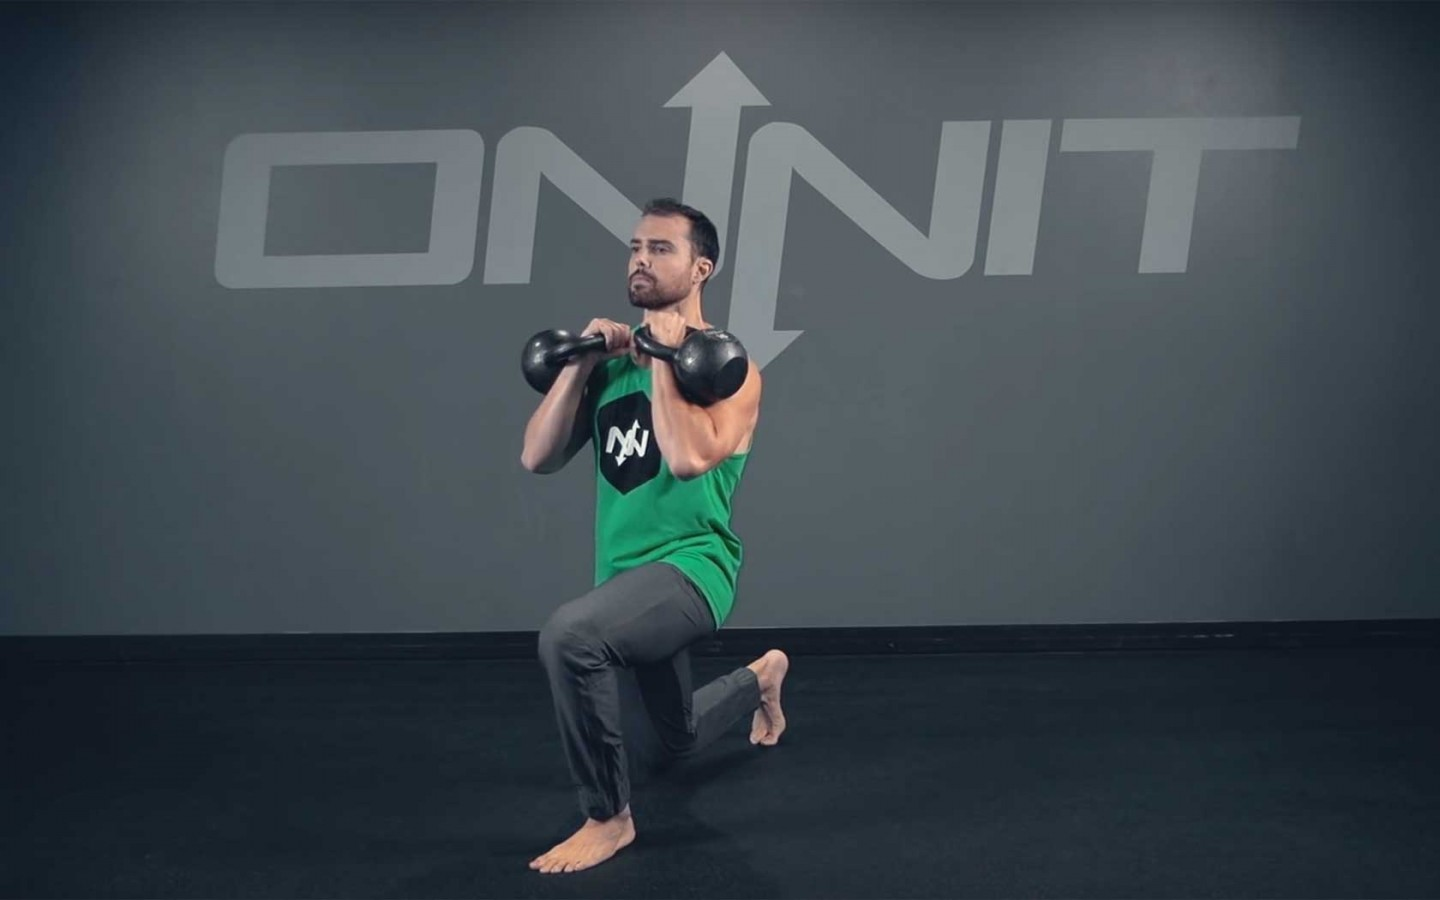 Double Kettlebell Forward Lunge Exercise